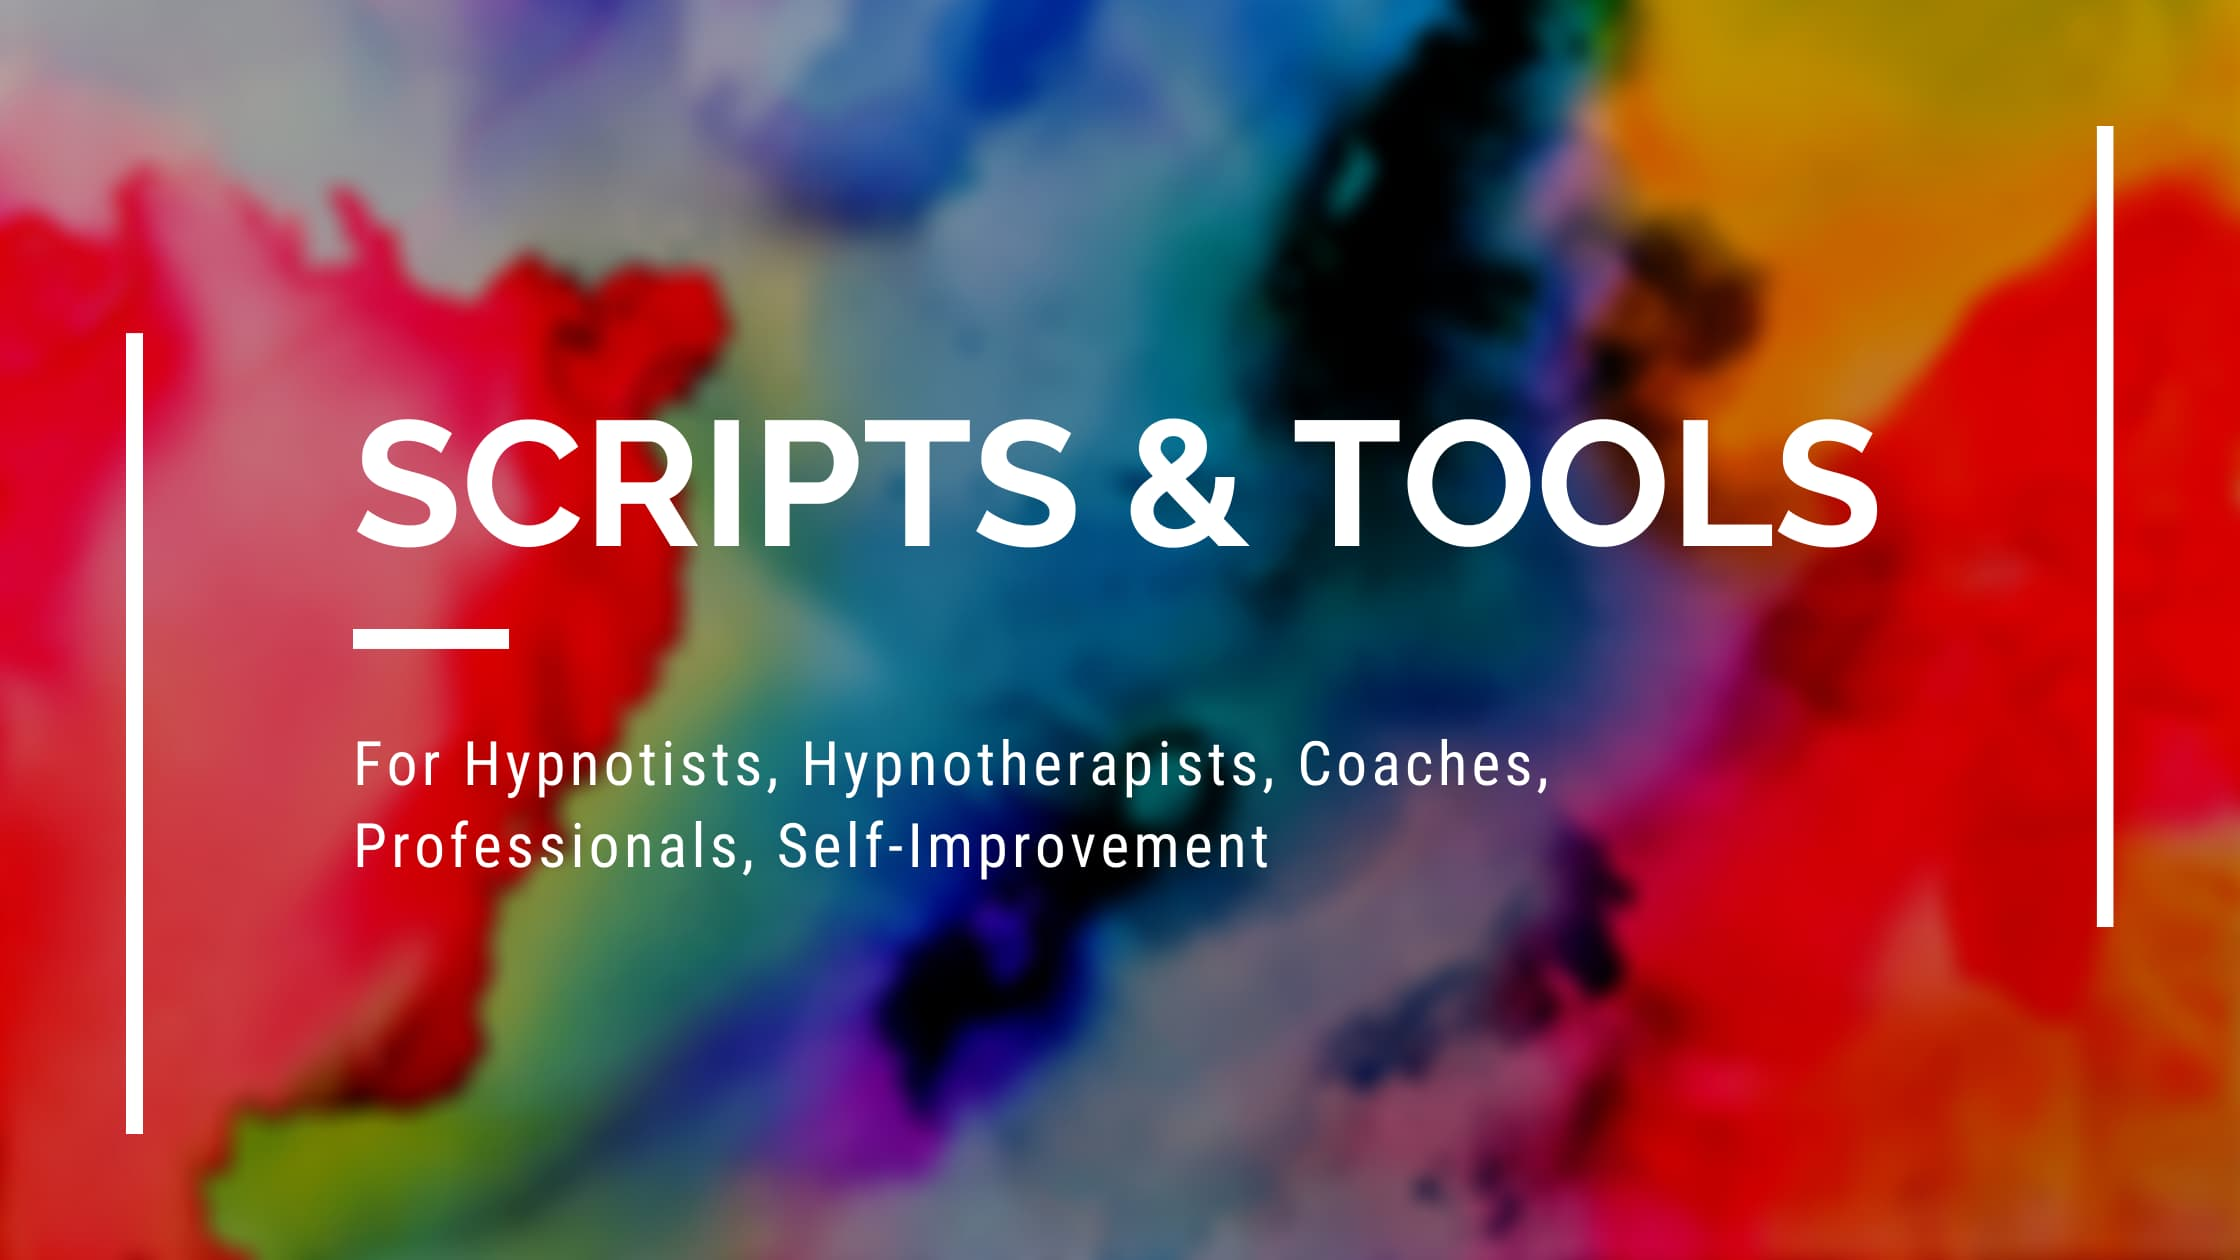 Scripts & Tools for hypnotists hypnotherapists resource page